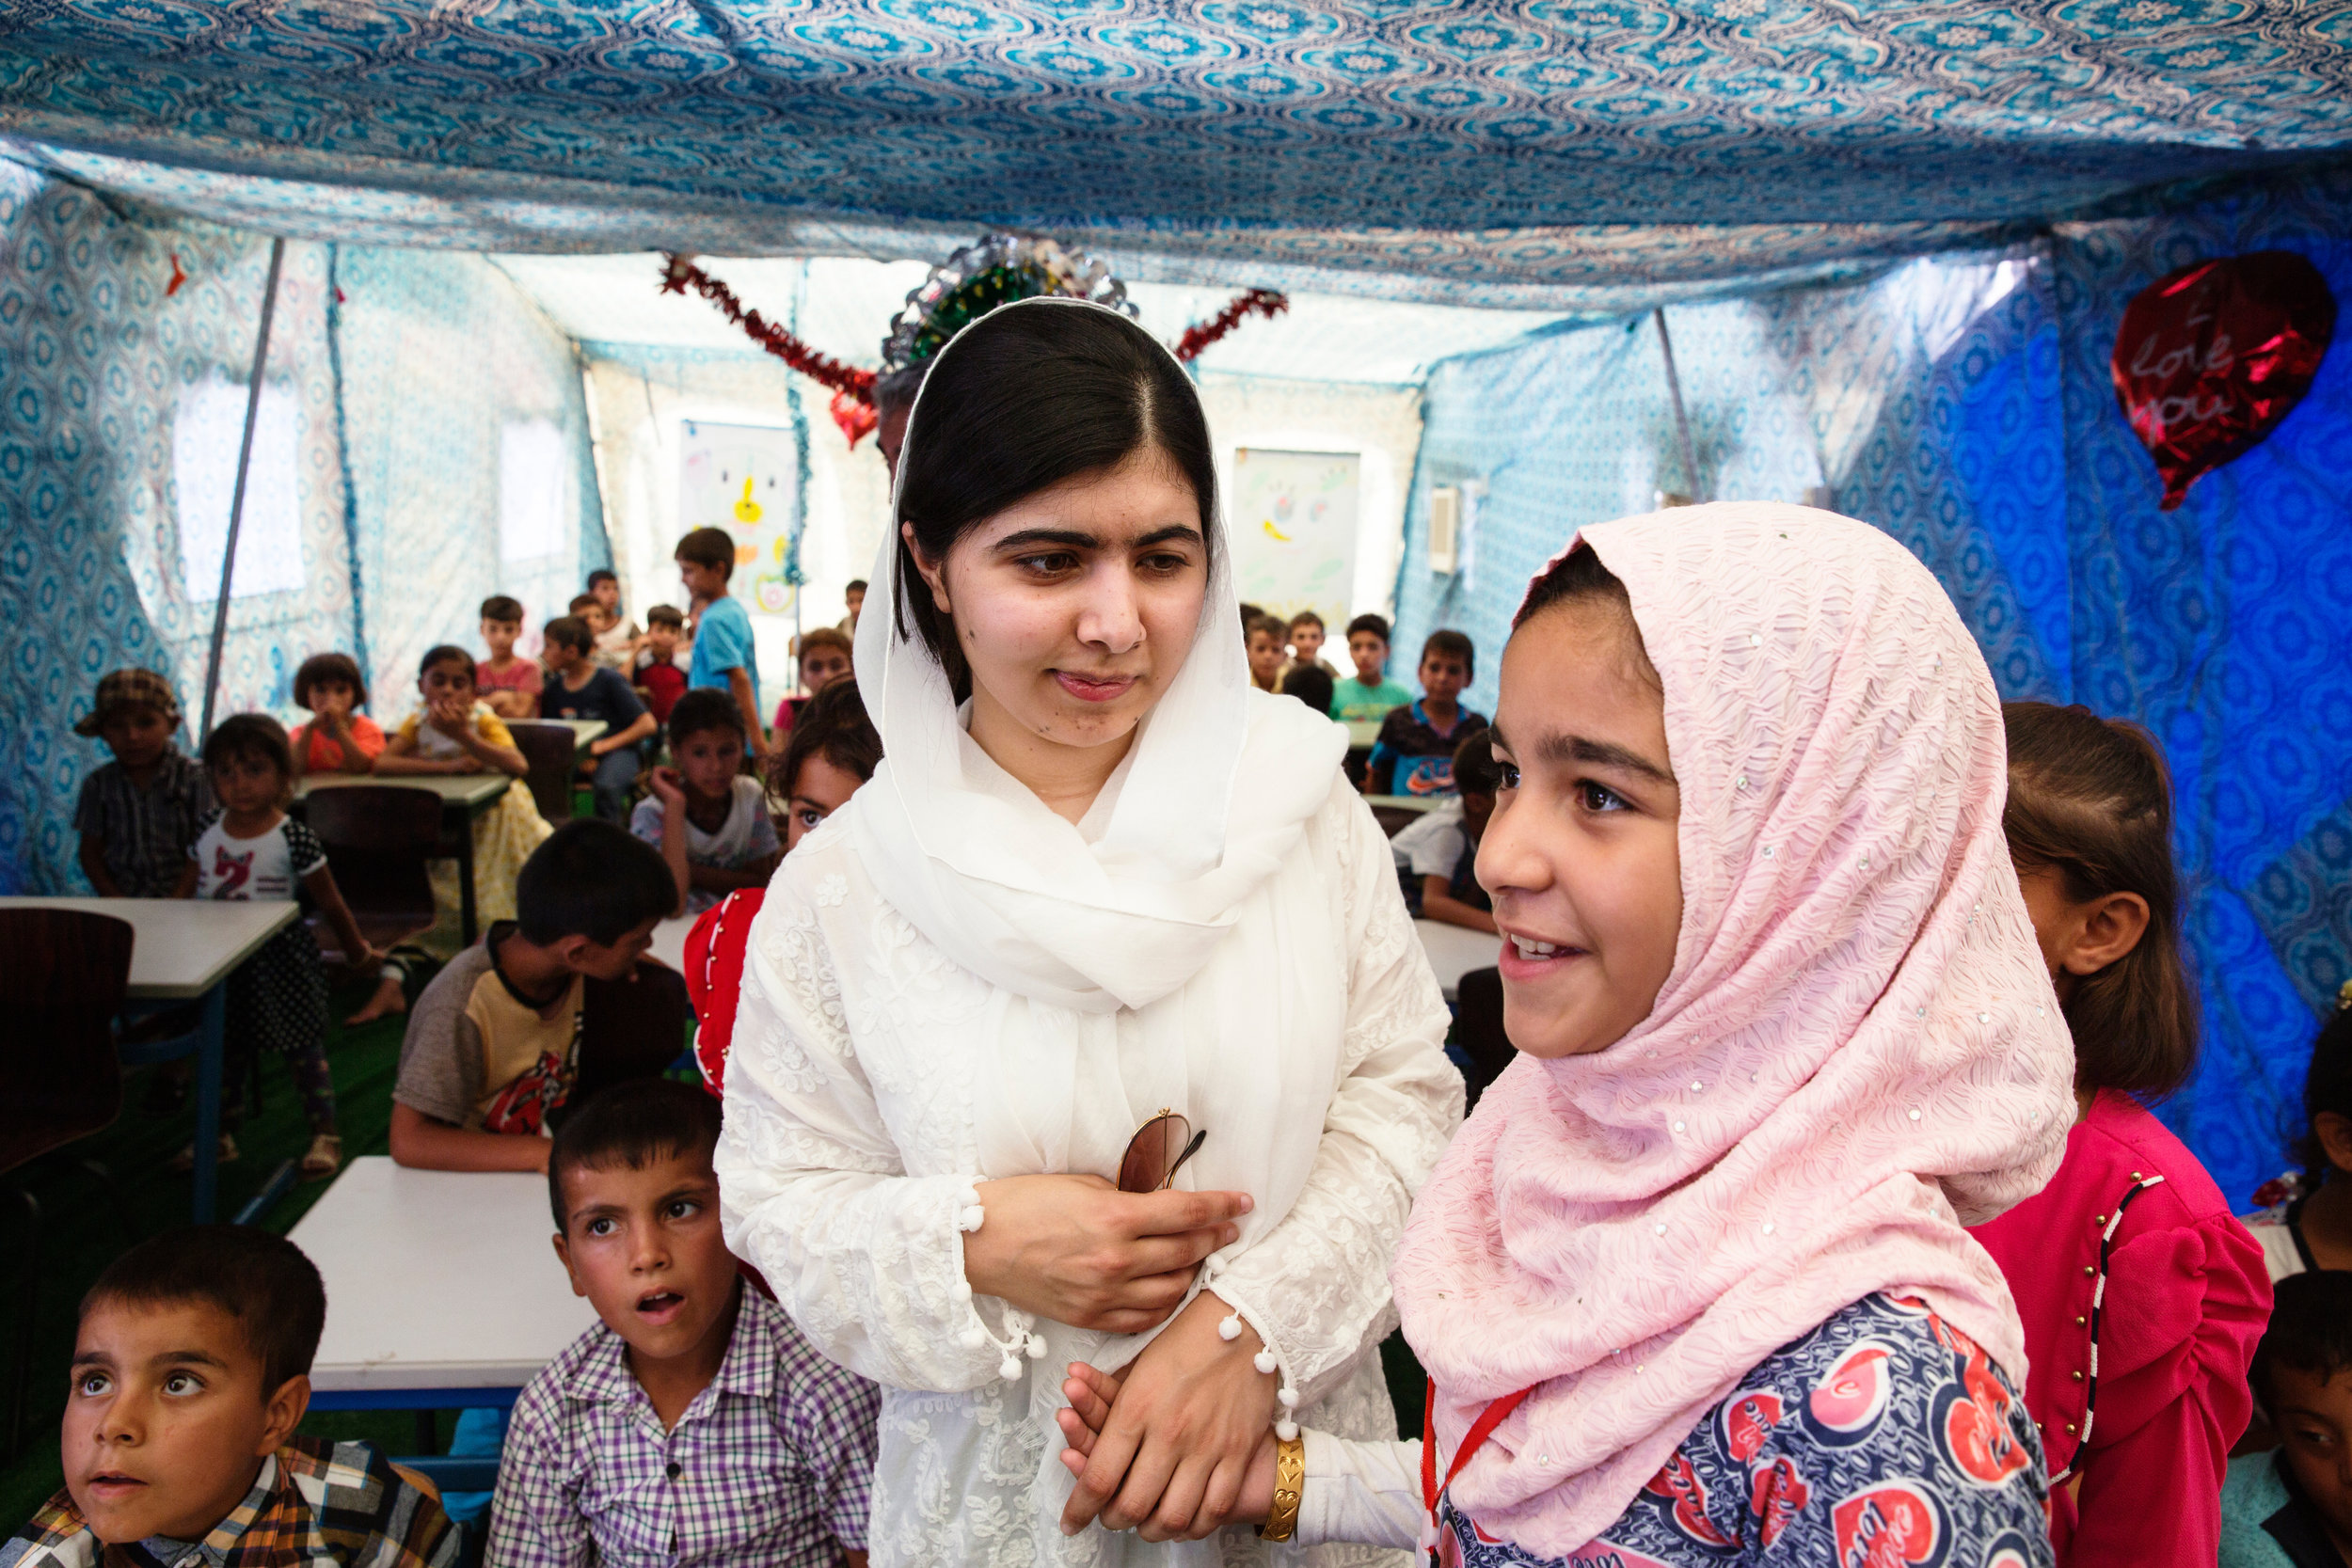 In 2017, Malin travelled with Malala to Iraq and Kurdistan. In this picture, Malala meets girls at a camp for Mosul evacuees. (Courtesy of Malin Fezehai / Malala Fund)